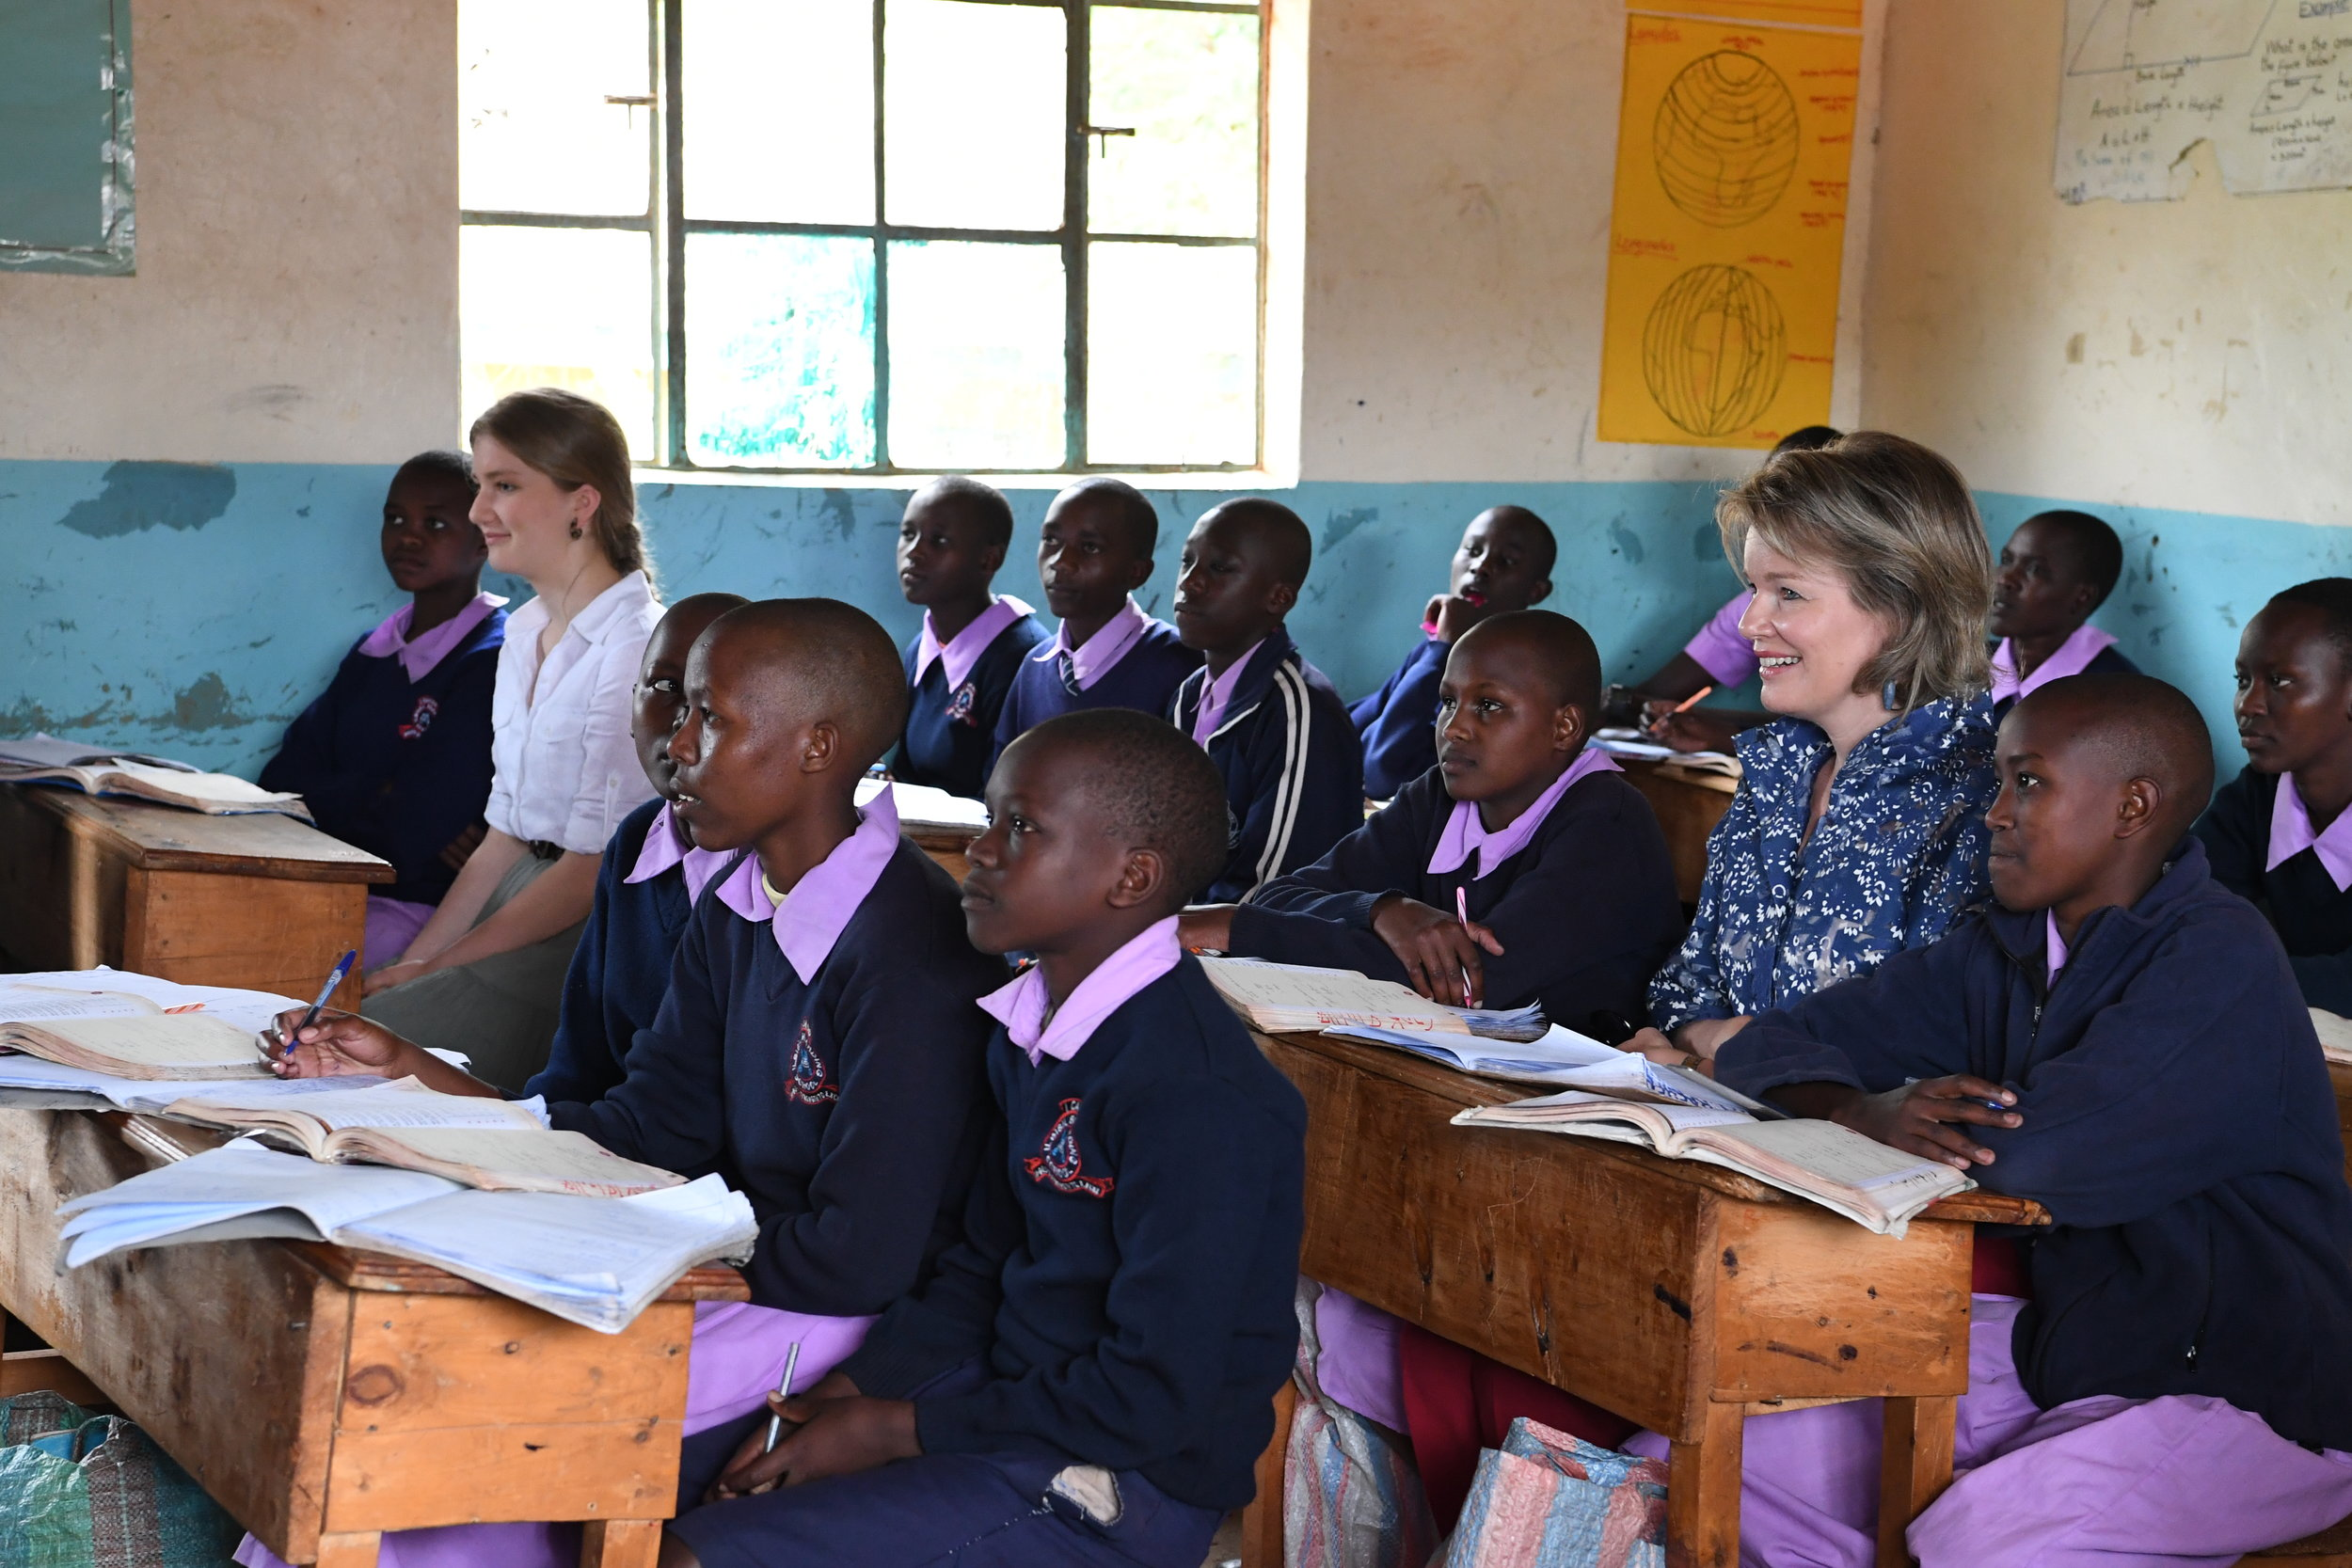 Her Majesty Queen Mathilde and Princess Elisabeth sit in on class in Maasai.